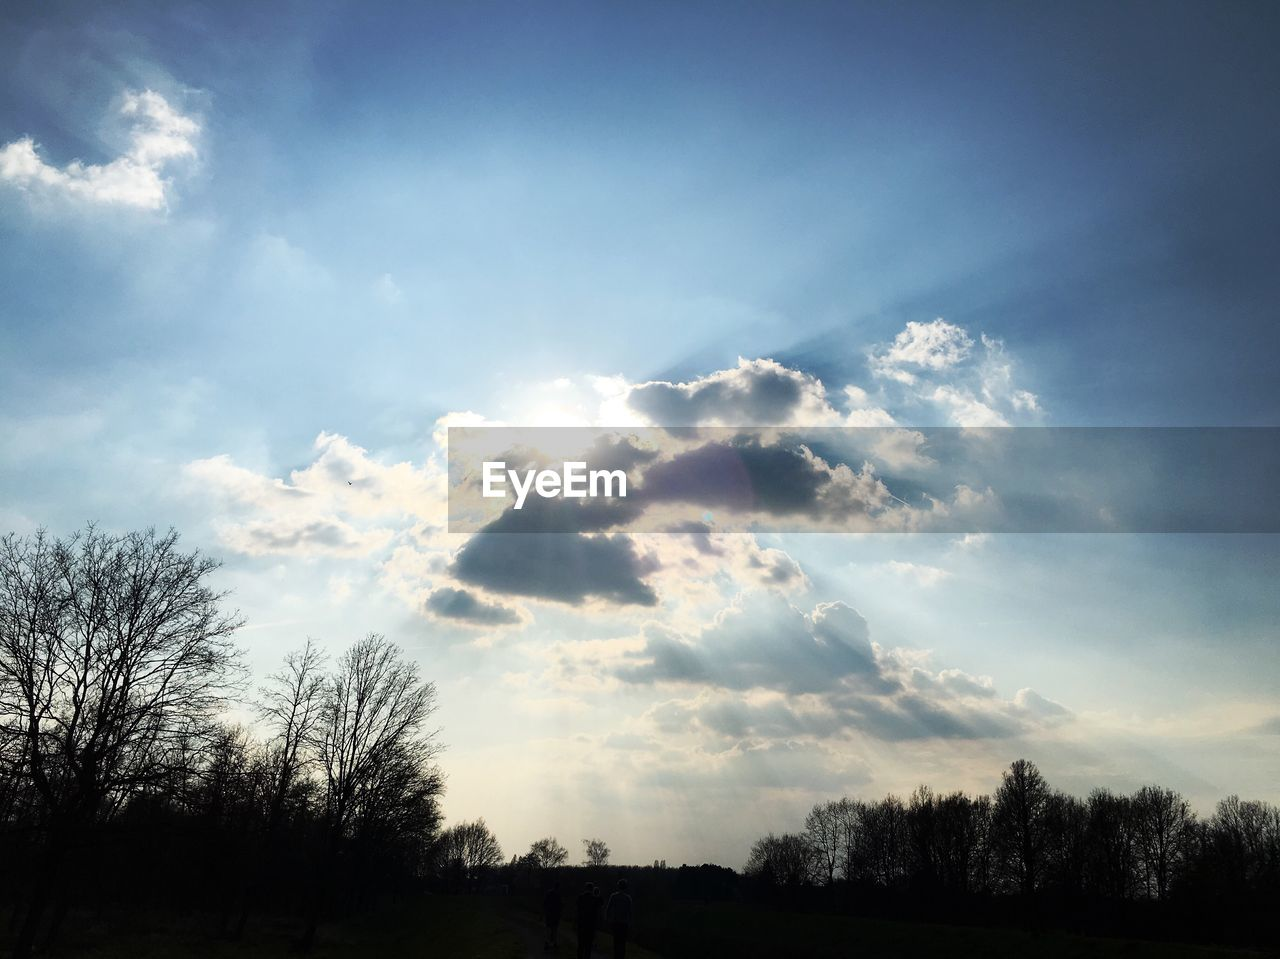 sky, cloud - sky, tree, beauty in nature, plant, tranquility, scenics - nature, silhouette, tranquil scene, no people, nature, non-urban scene, sunlight, low angle view, outdoors, bare tree, landscape, environment, day, land, wispy